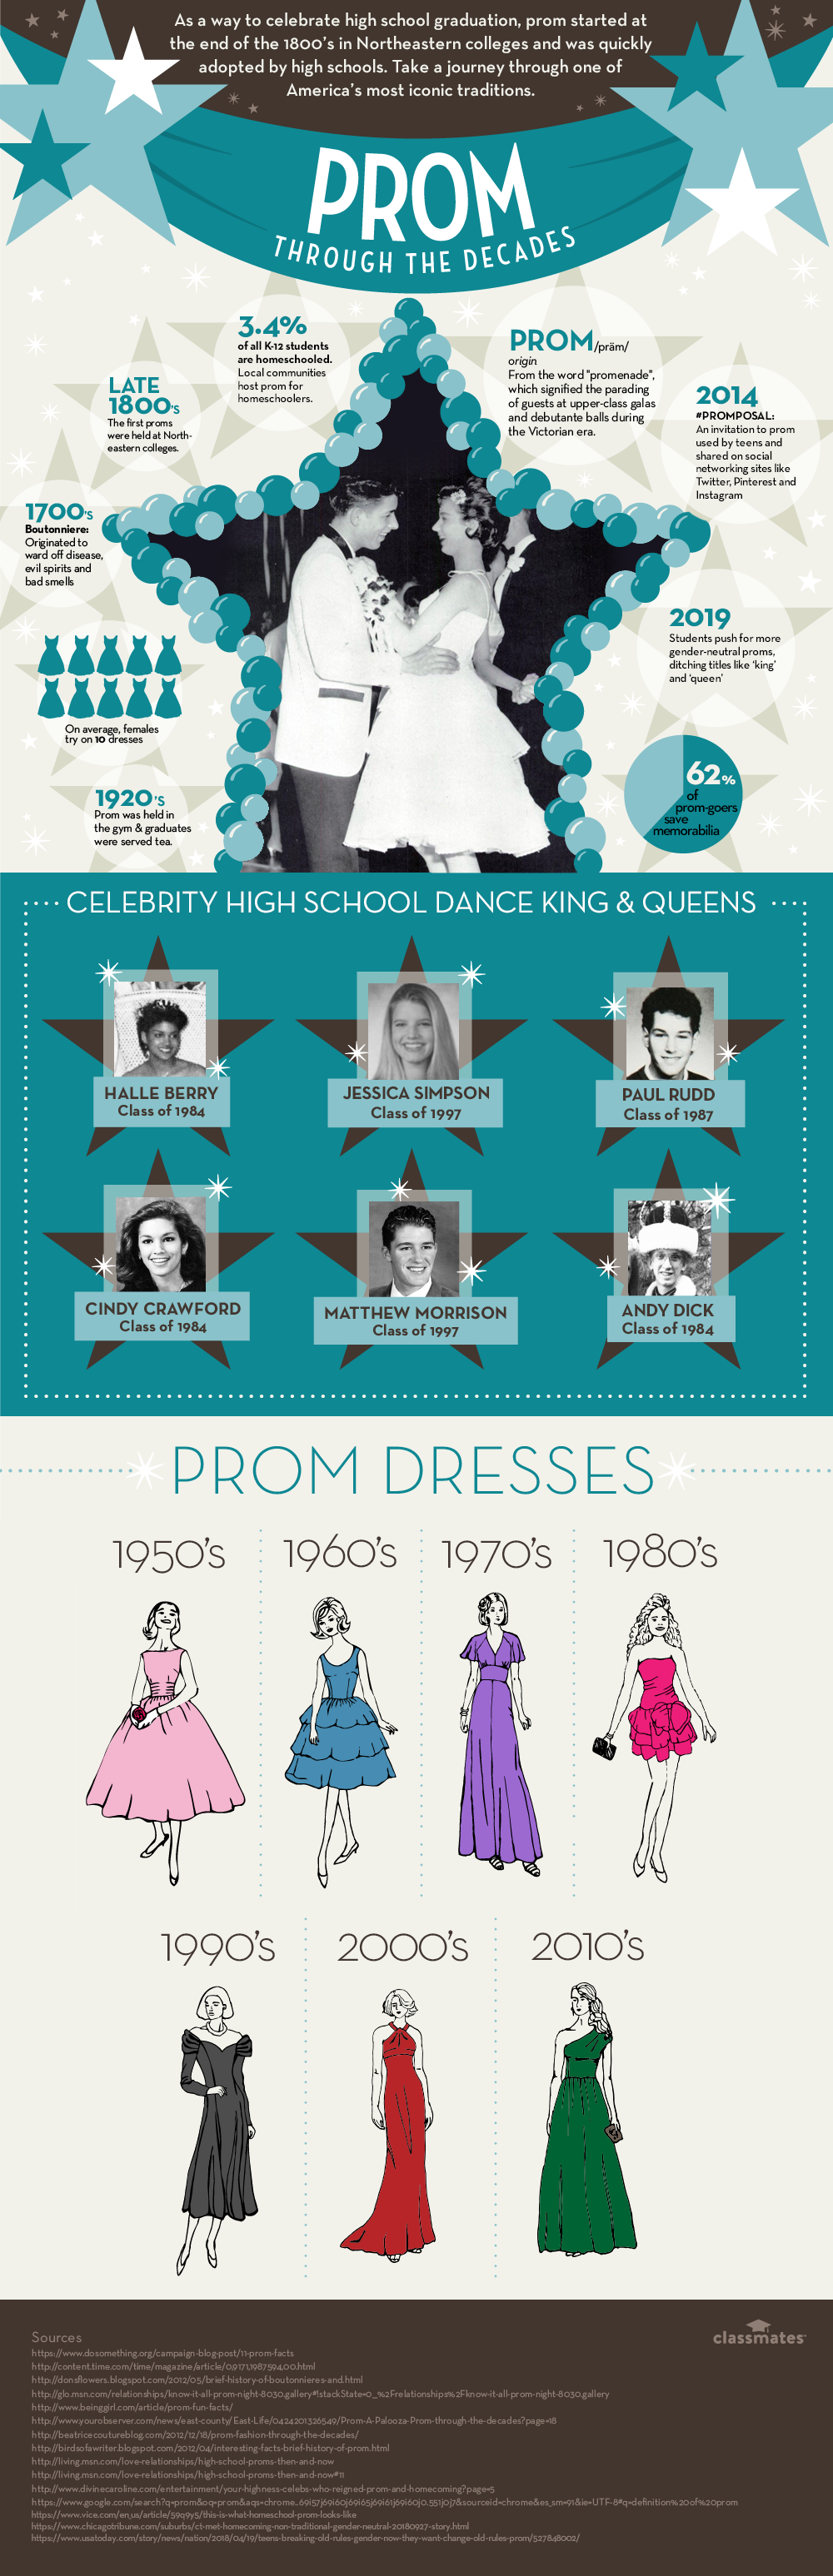 Prom Through the Decades Infographic